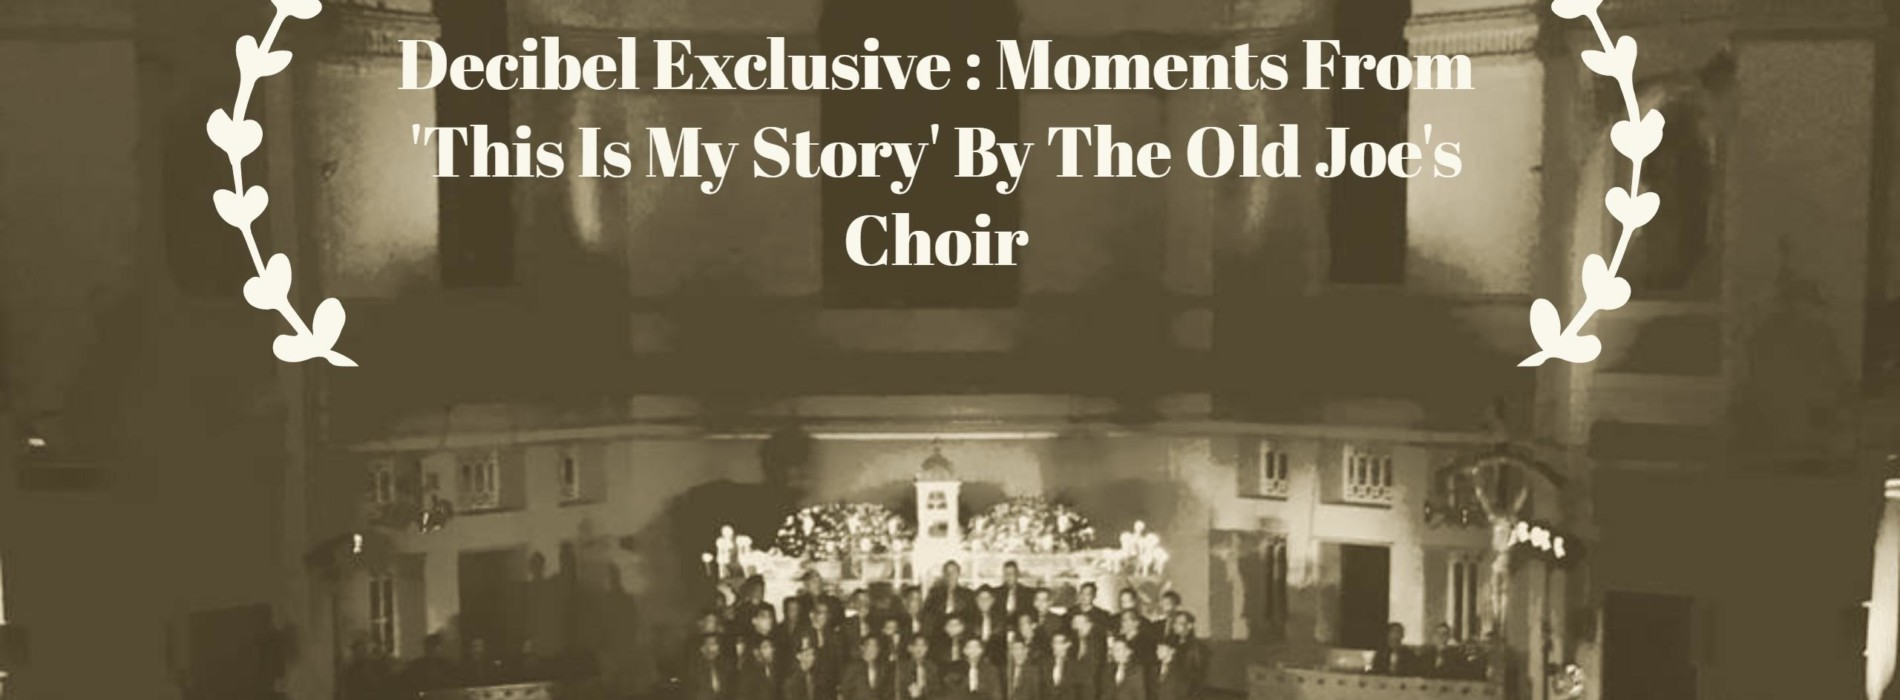 Decibel Exclusive : Moments From 'This Is My Story' By The Old Joe's Choir